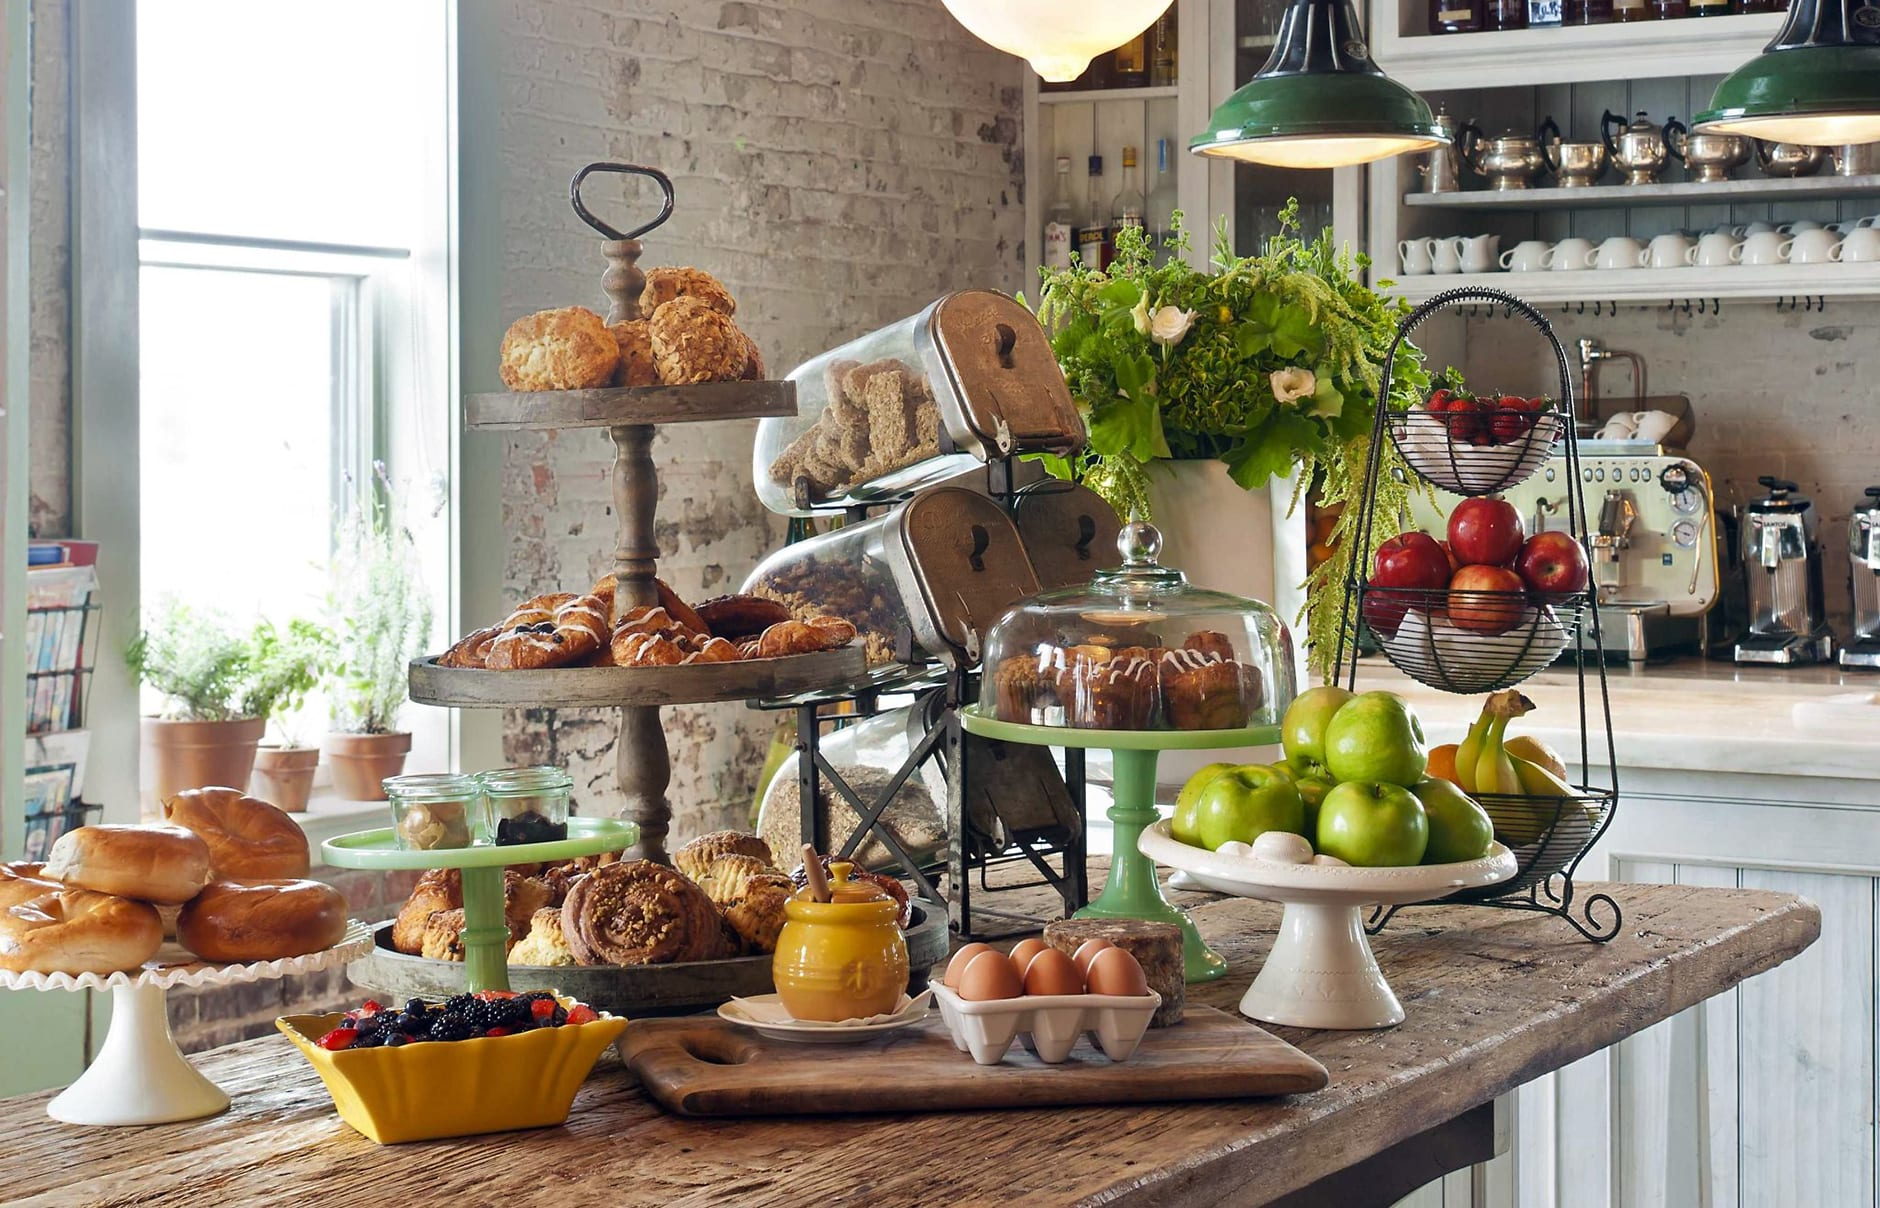 Breakfast Bar. Soho House New York. © Soho House